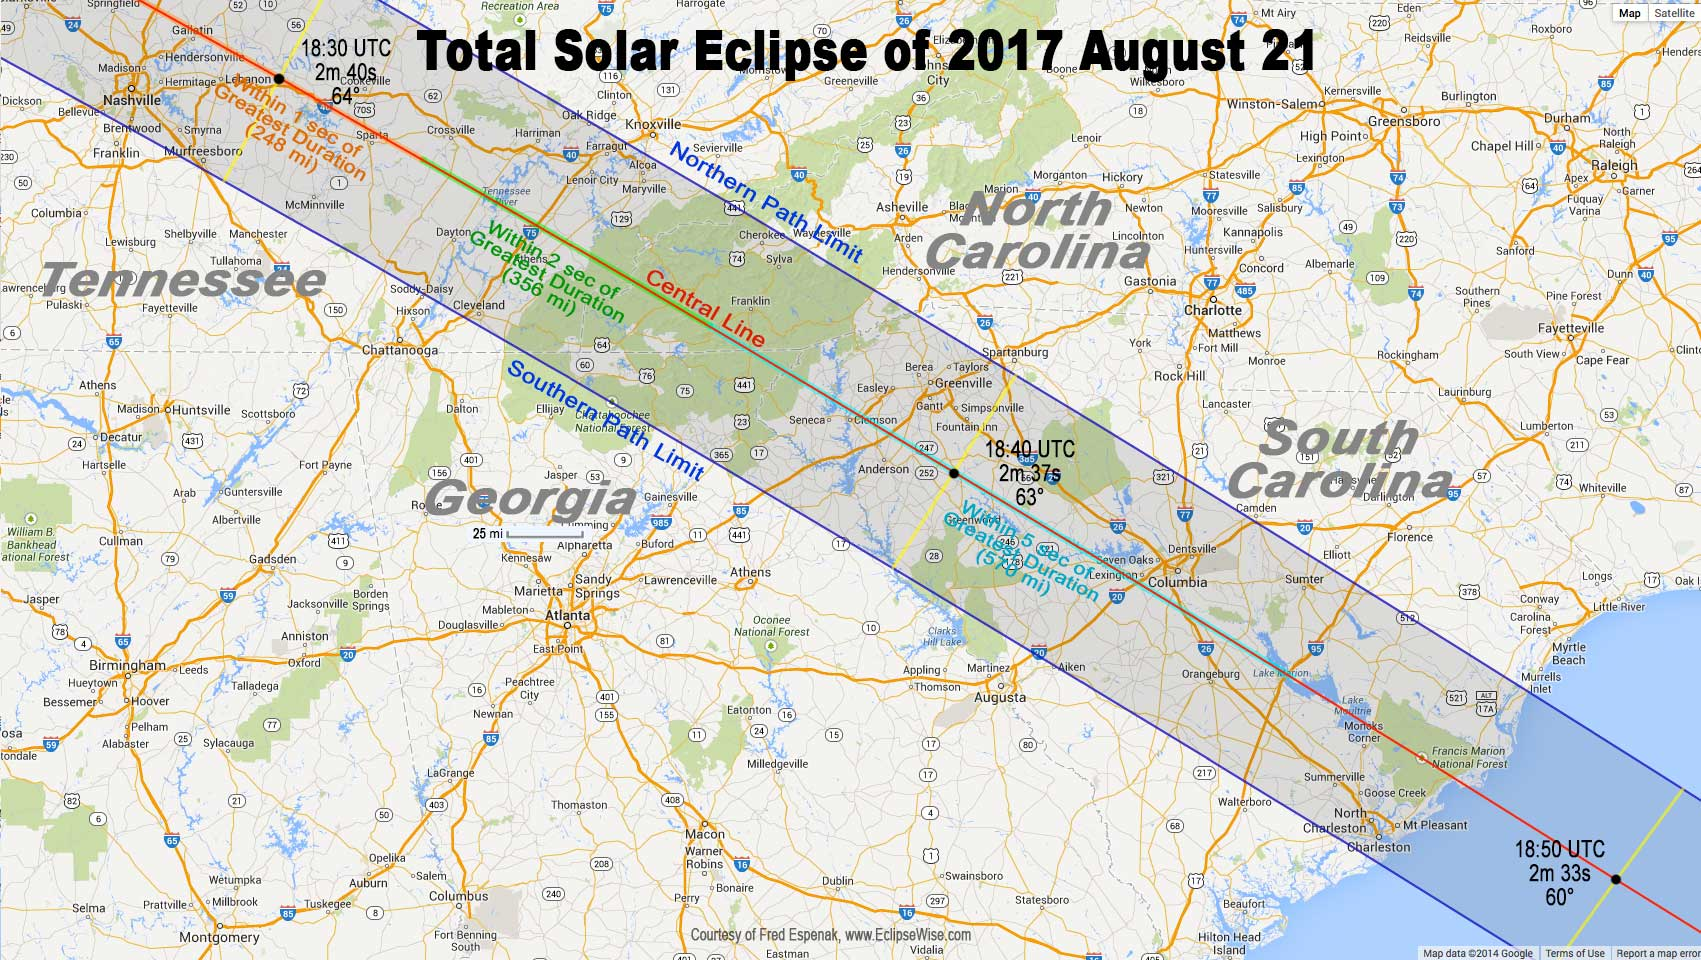 2017 Total Solar Eclipse Map Total Eclipse of the Sun: August 21, 2017